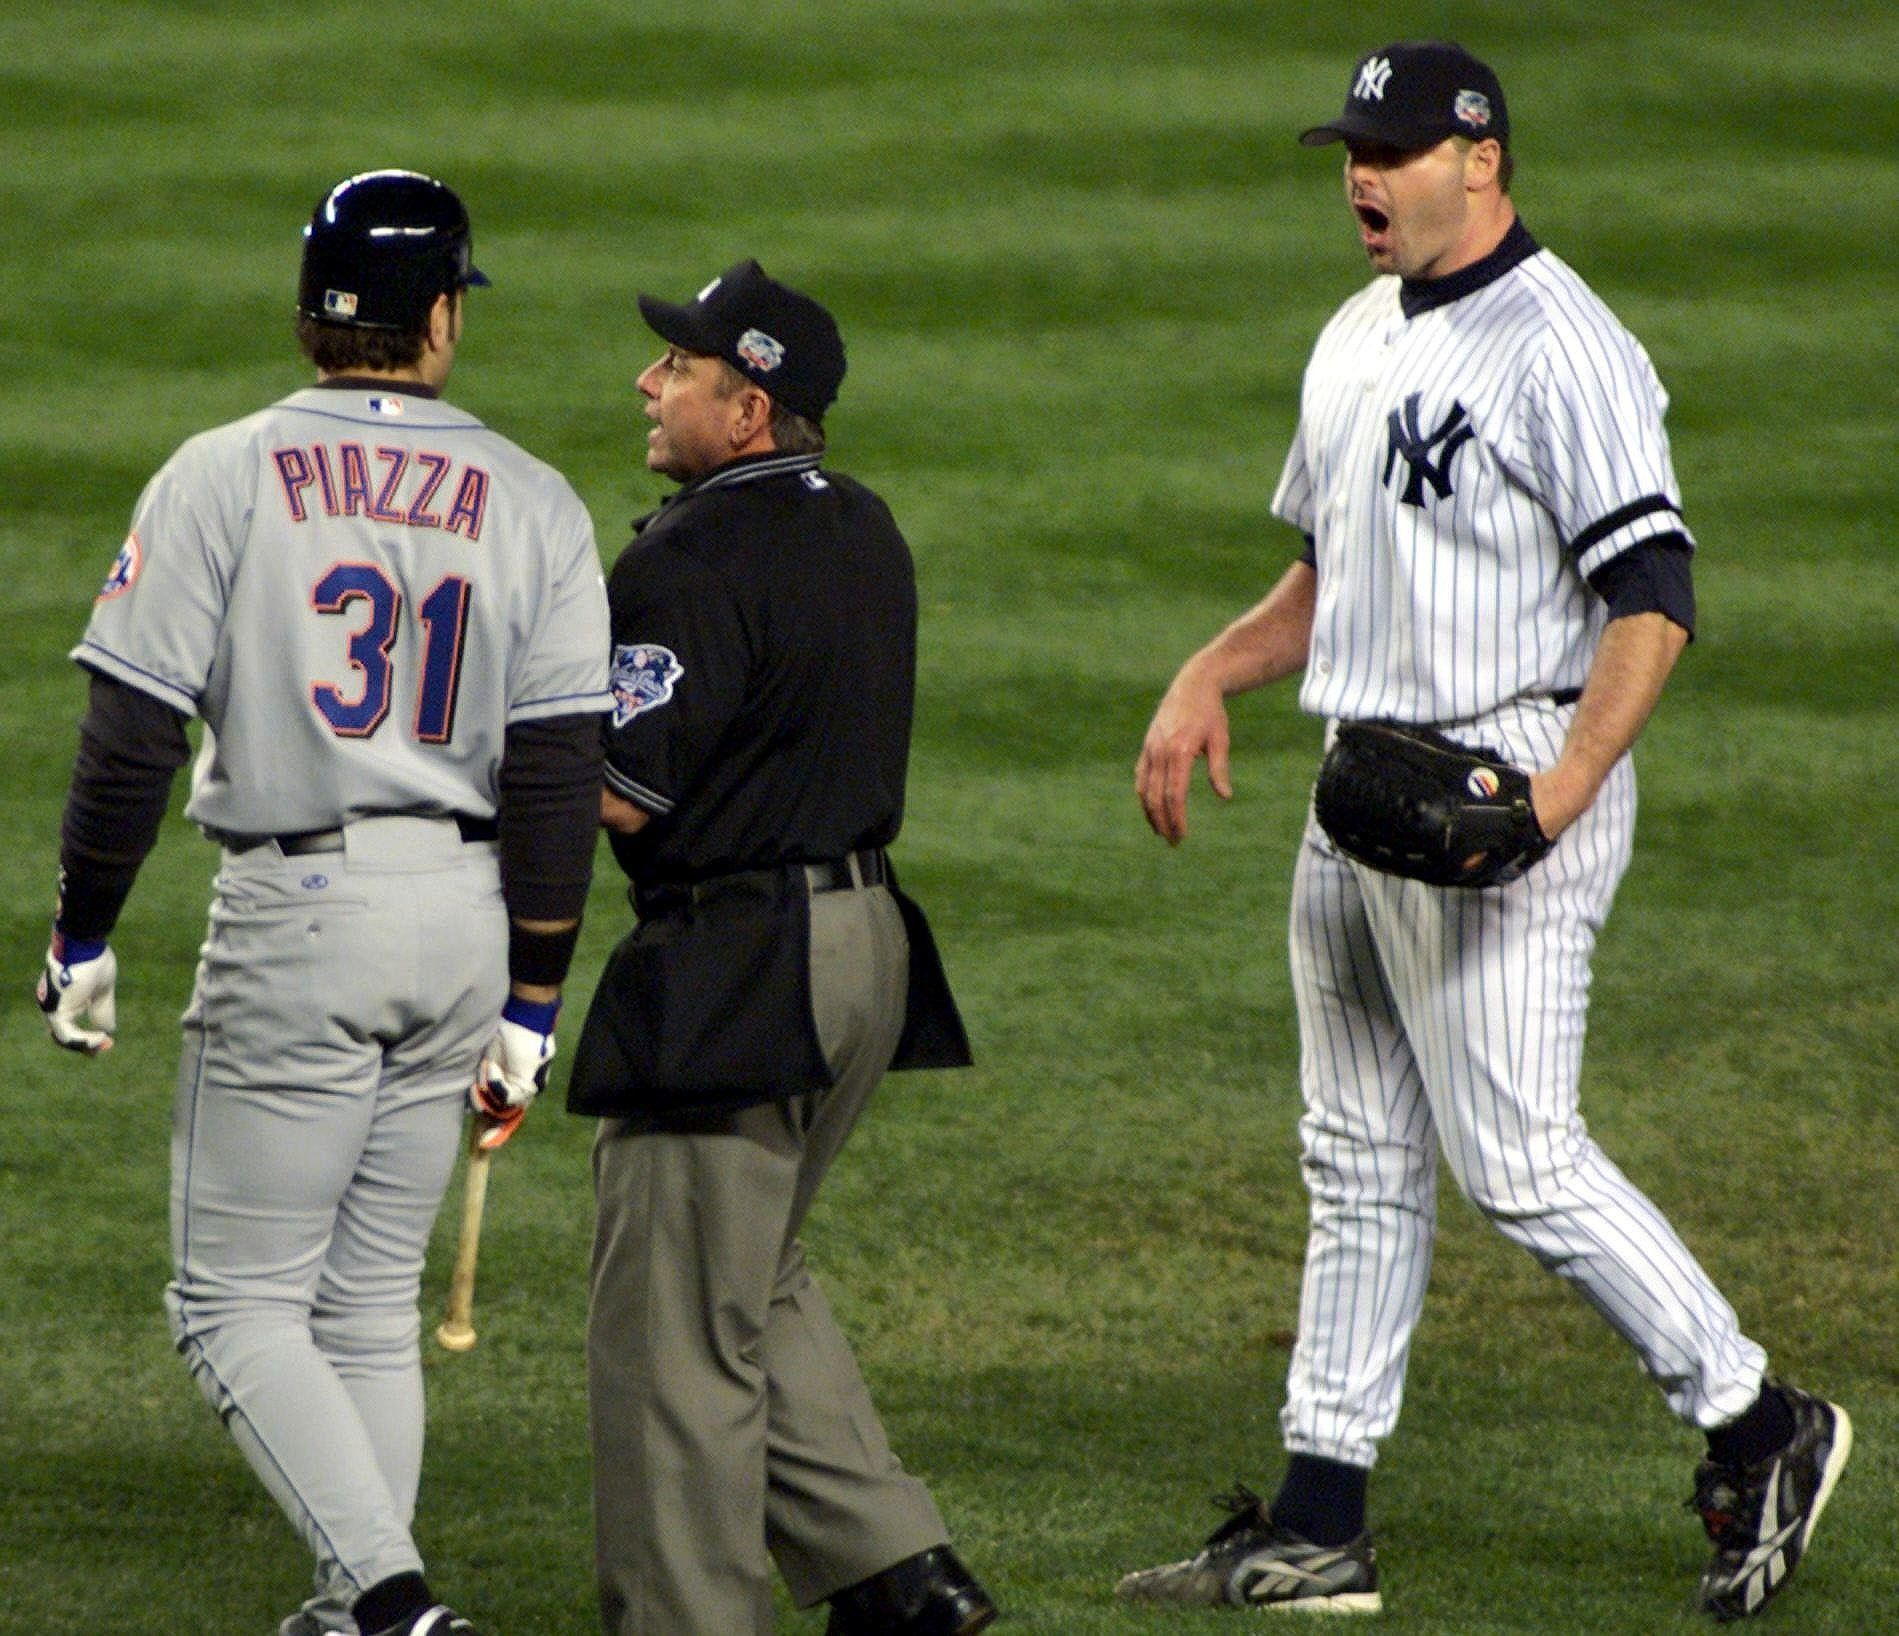 NEW YORK, UNITED STATES:  Home plate umpire Charlie Reliford (C) comes between New York Mets' catcher Mike Piazza (L) and New York Yankees' pitcher Roger Clemens during the first inning of the Second Game of the World Series in New York City 22 October, 2000. Clemens threw a piece of Piazza's broken bat at Piazza as he ran to first base causing a dugout clearing altercation between the two teams.  AFP PHOTO/Don EMMERT (Photo credit should read DON EMMERT/AFP/Getty Images)